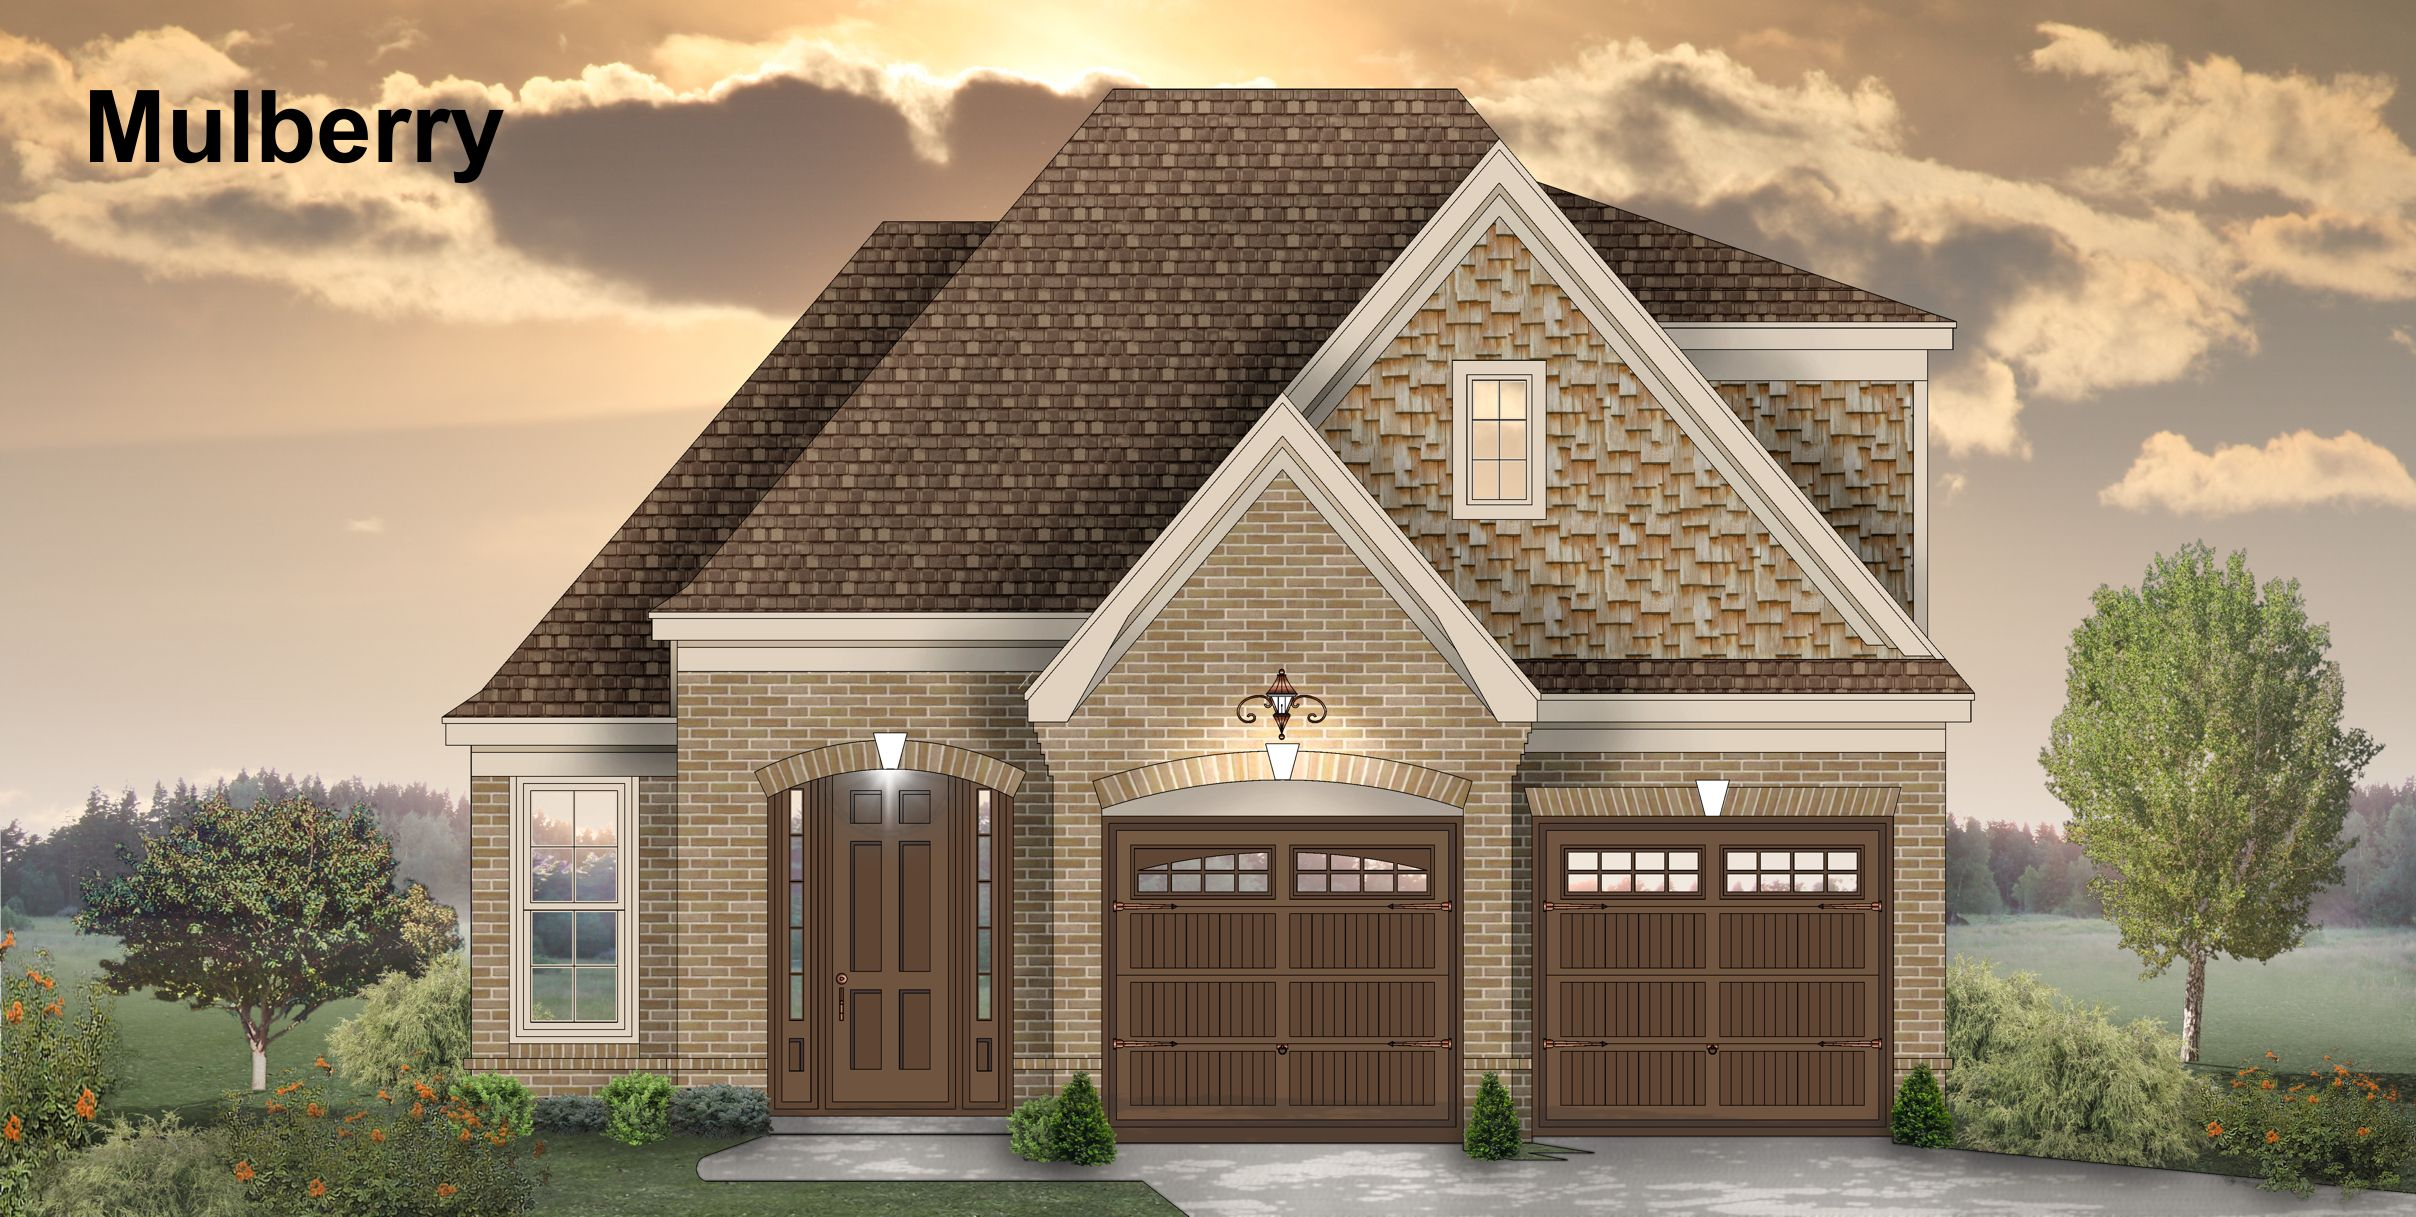 Sky Lake Construction New Home Plans in Memphis TN | NewHomeSource